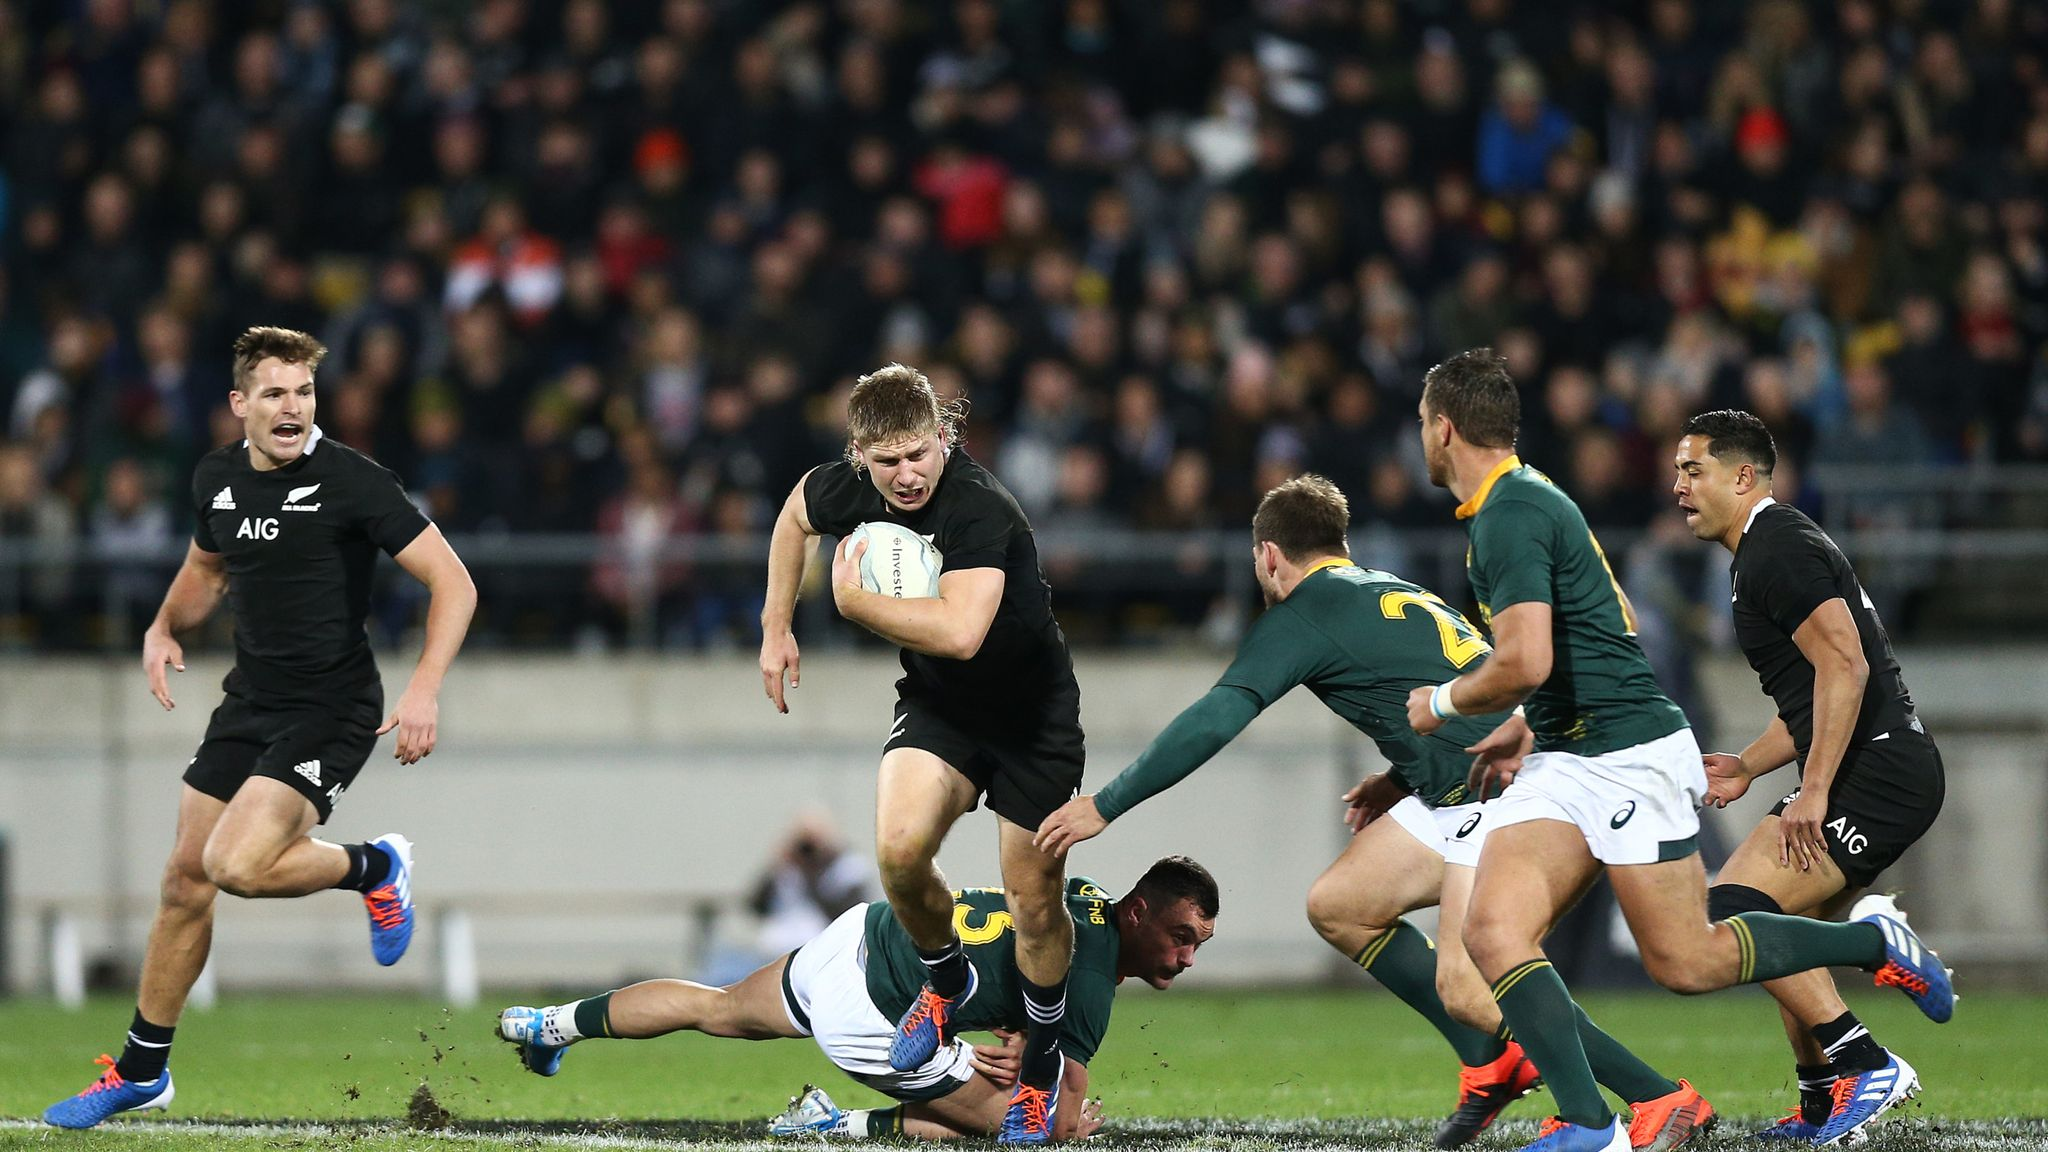 New Zealand Camp Excited About Ireland Quarter Final At Rugby World Cup Rugby Union News Sky Sports